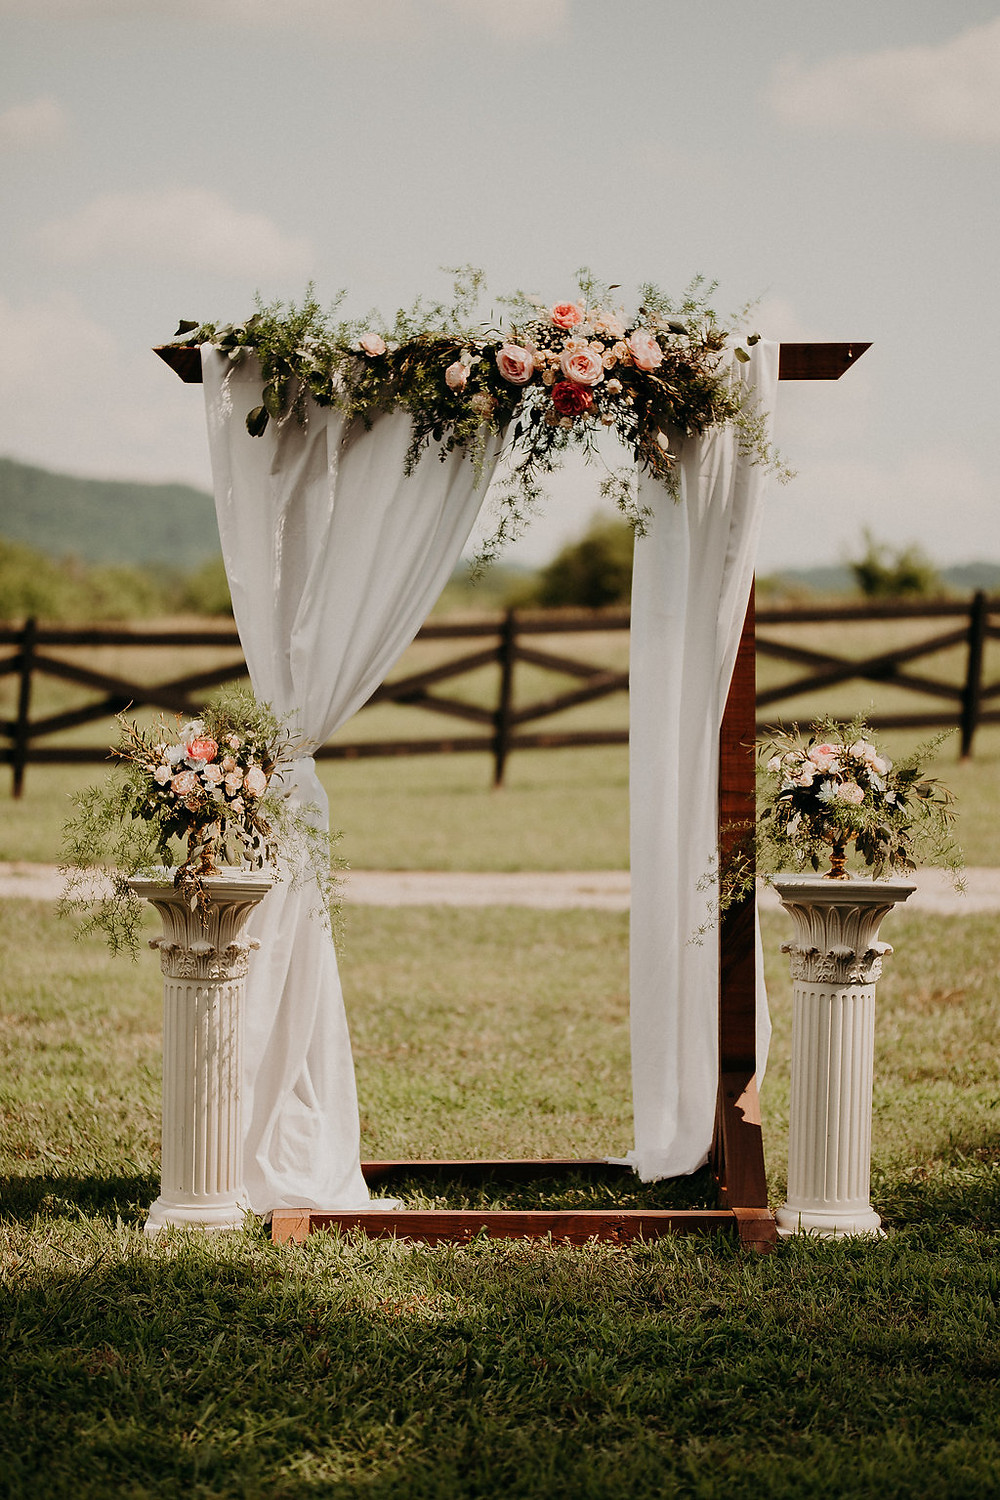 Wedding Arbor with drapery and flowers